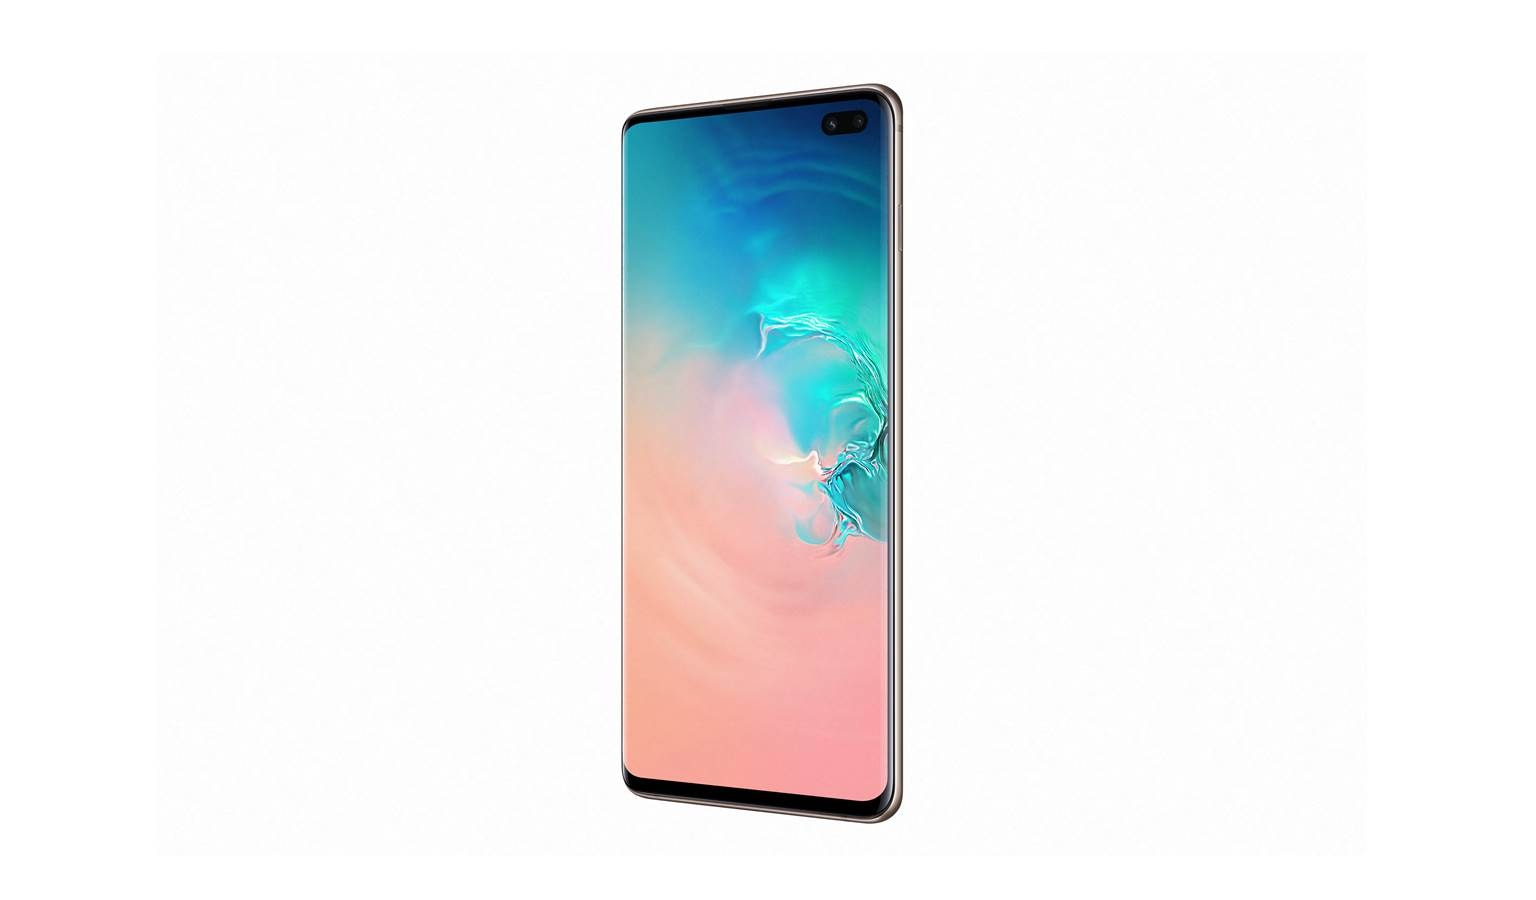 Samsung Galaxy S10+ Smartphone - Ceramic White (Left)